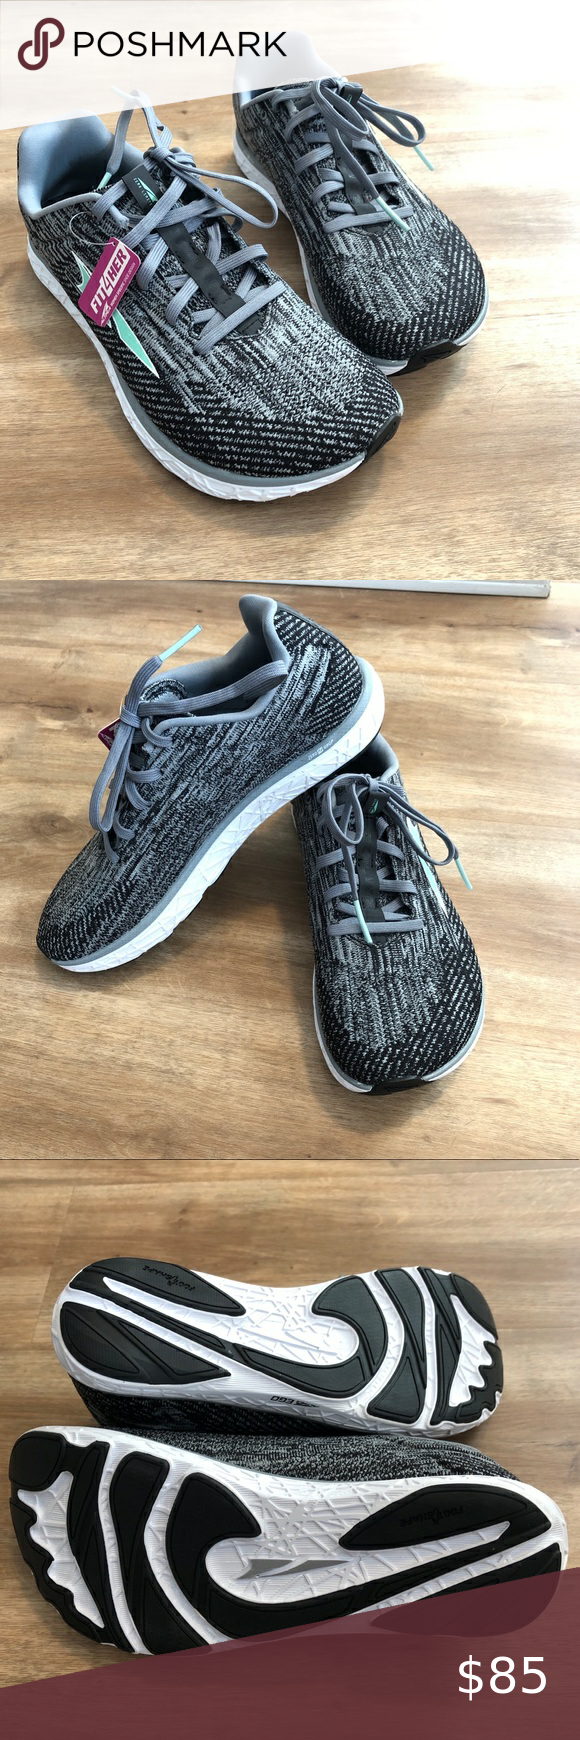 Altra 8 Escalante 2 2 0 Grey Running Shoes Sneaker In 2020 Running Shoe Brands Running Shoes Sneakers Running Shoes